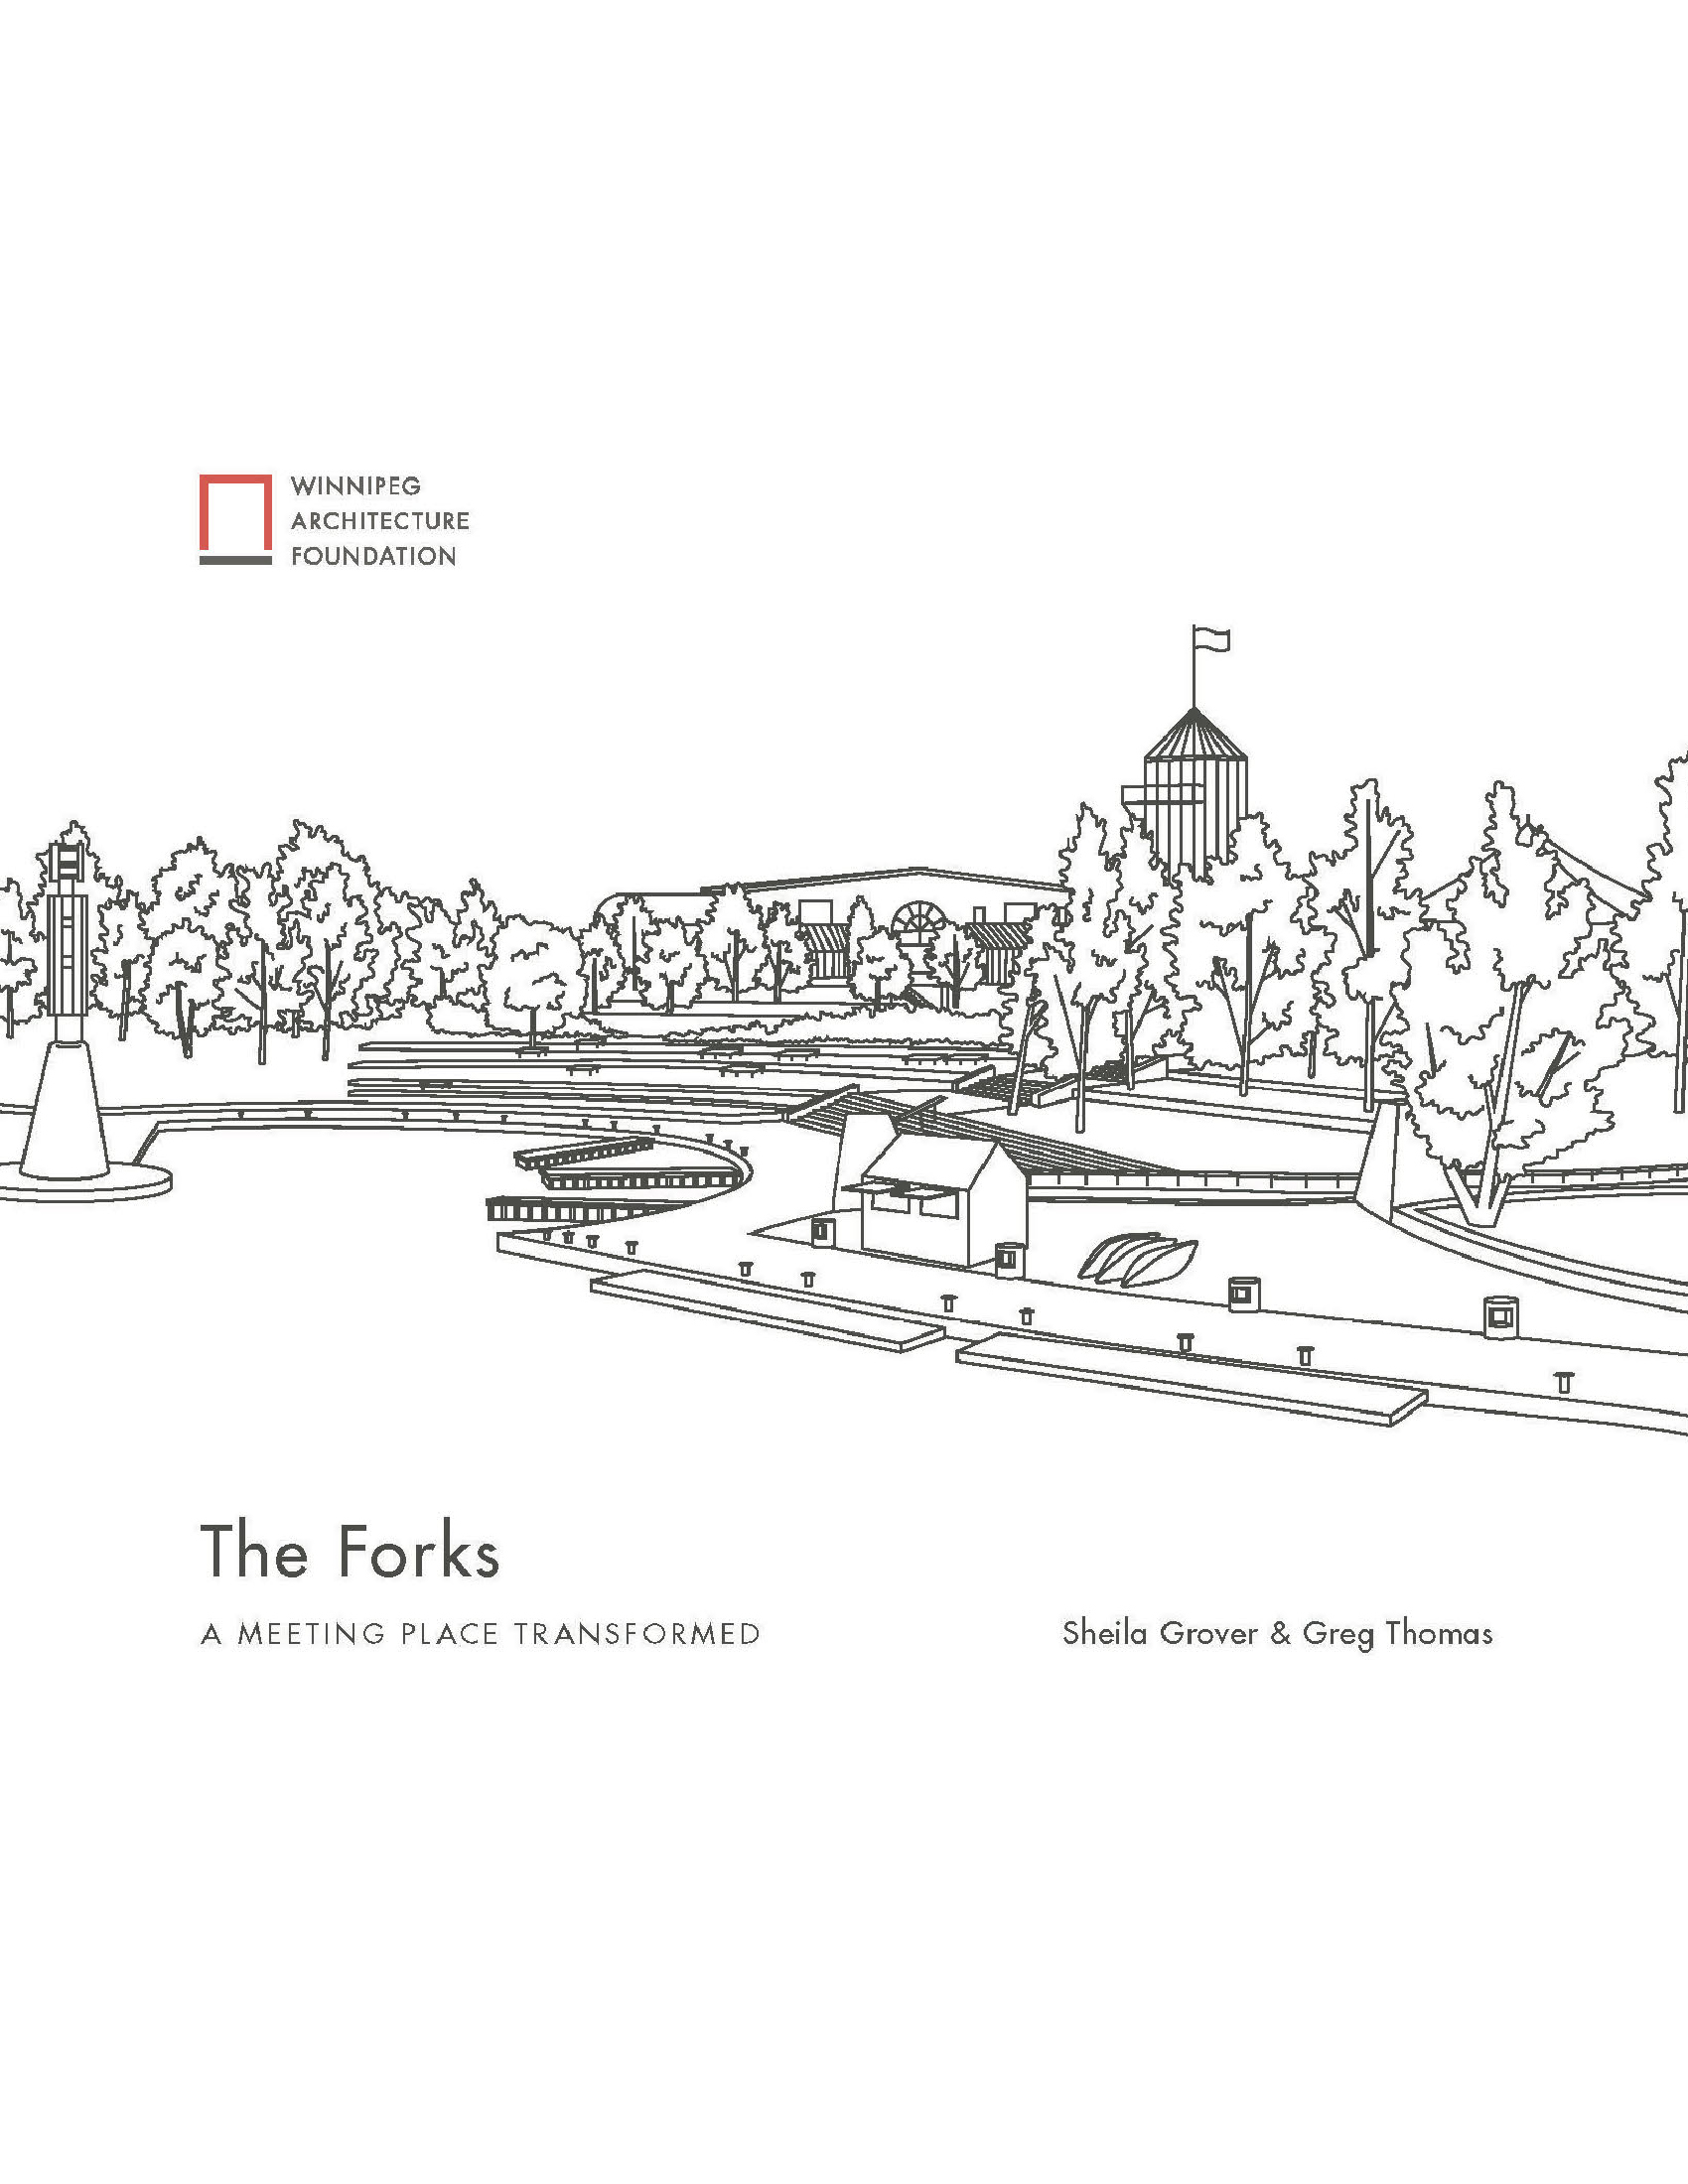 The Forks: A Meeting Place Transformed